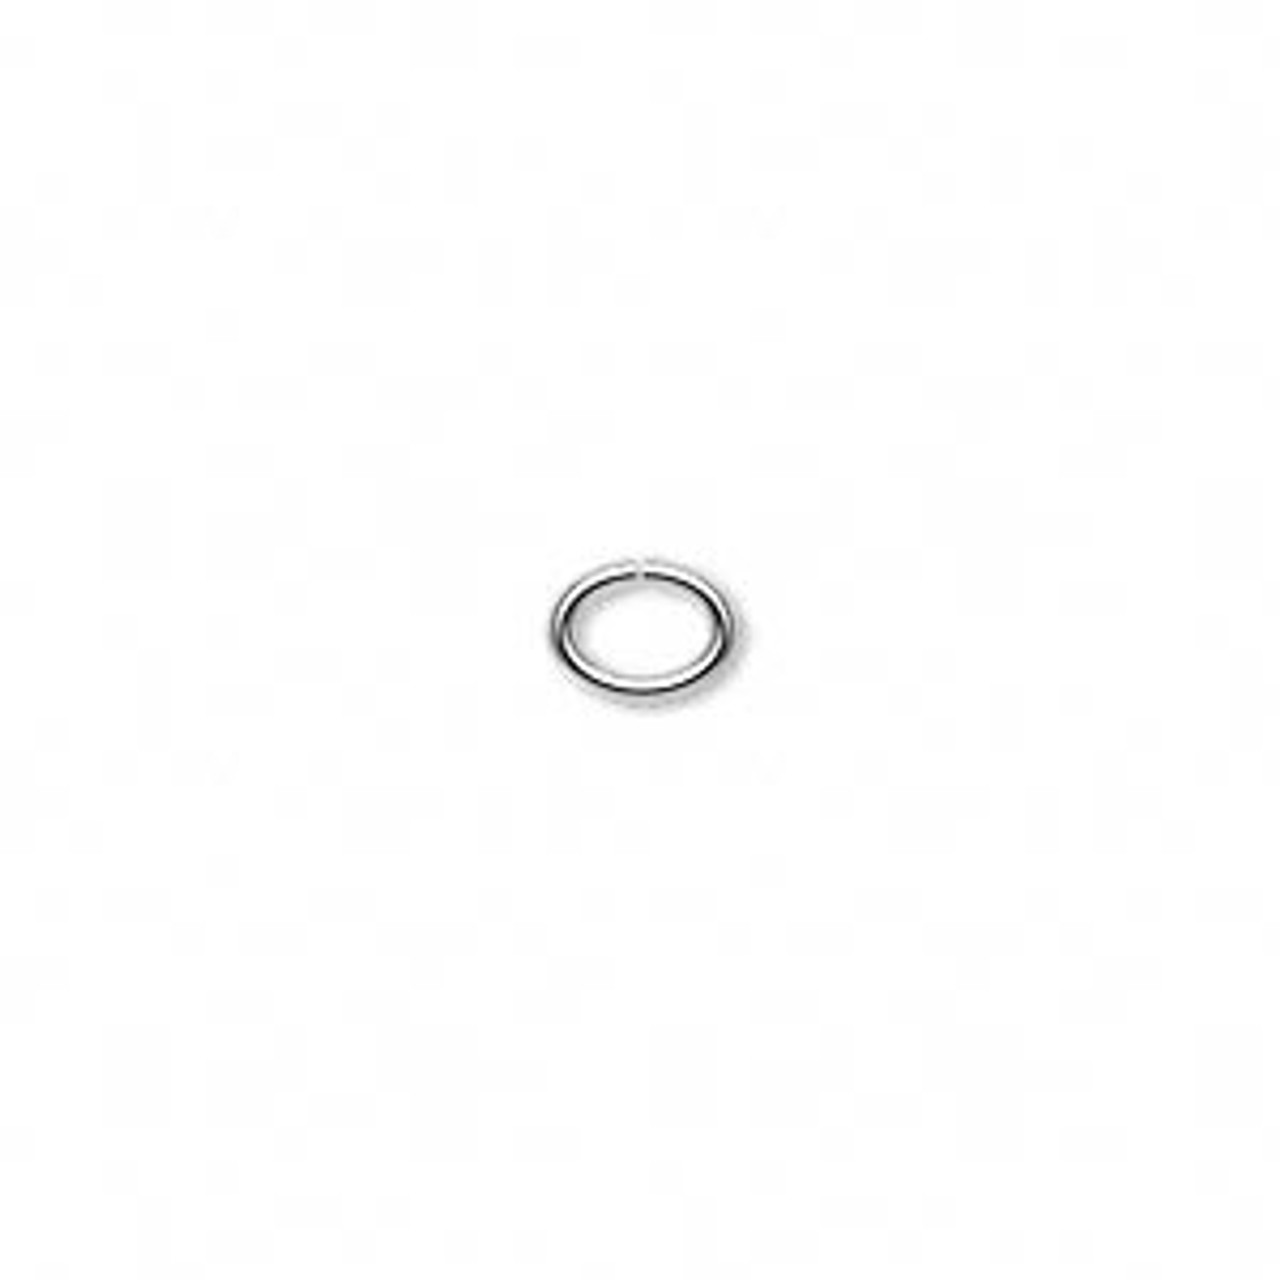 6.5x5mm Silver Plated Oval Jump Rings 100pk